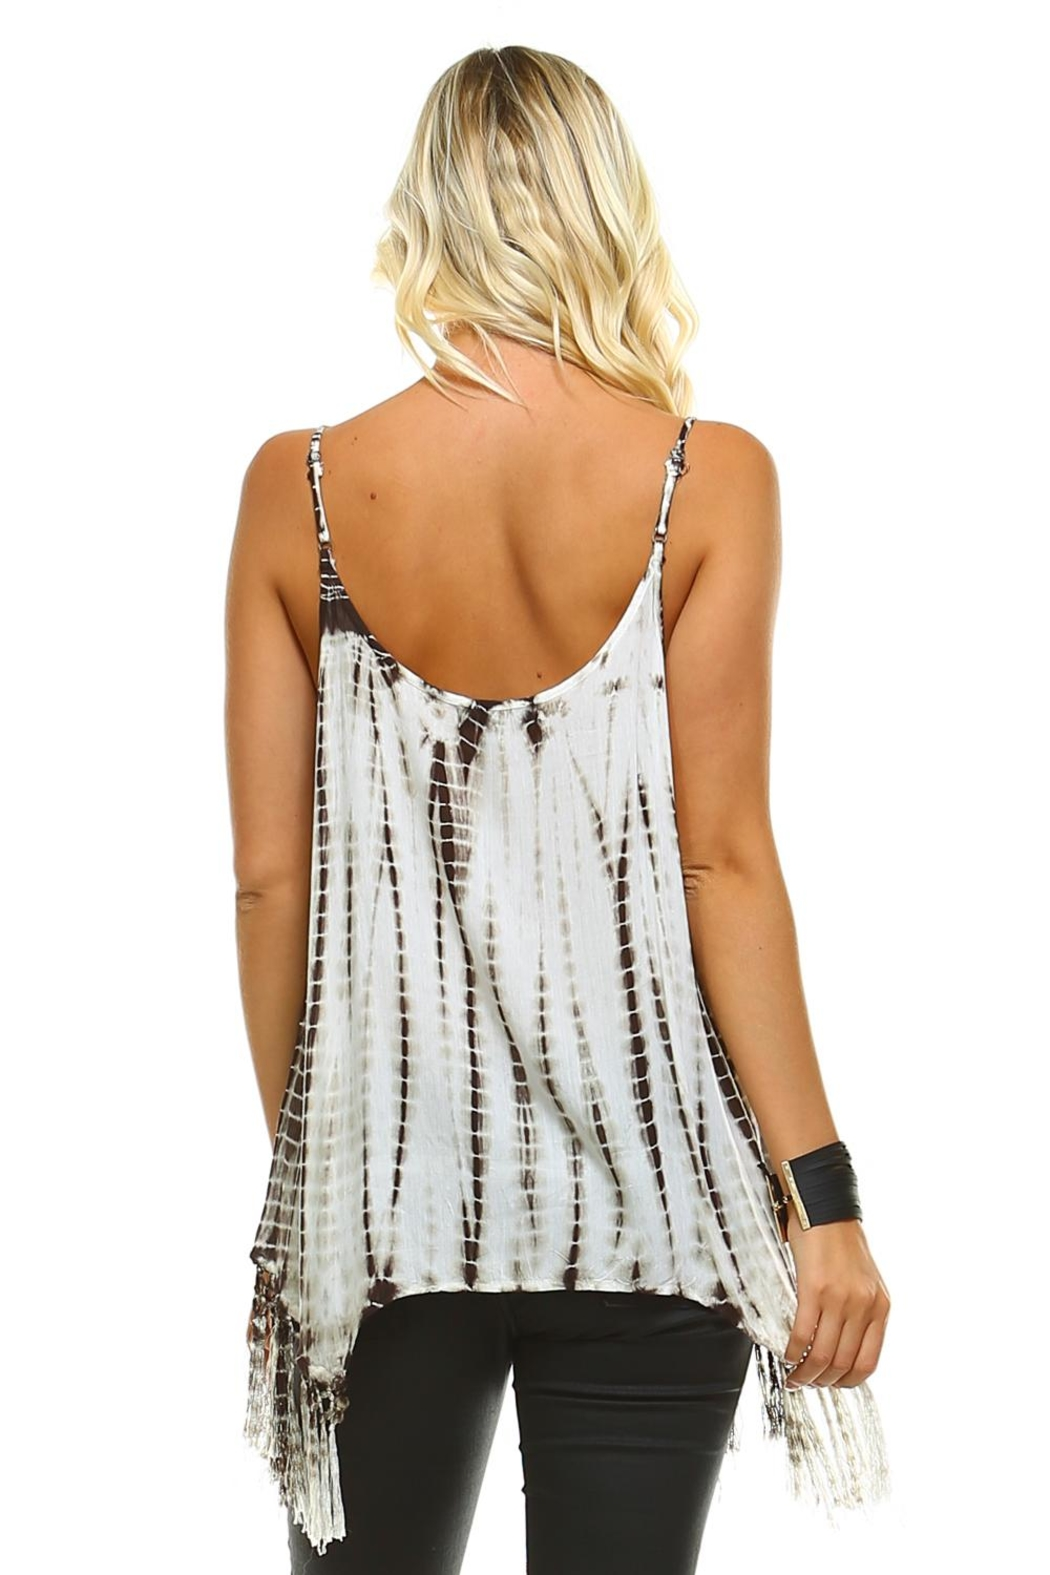 Maison Coupe Fringed Tie Dye Tank Top - Front Full Image